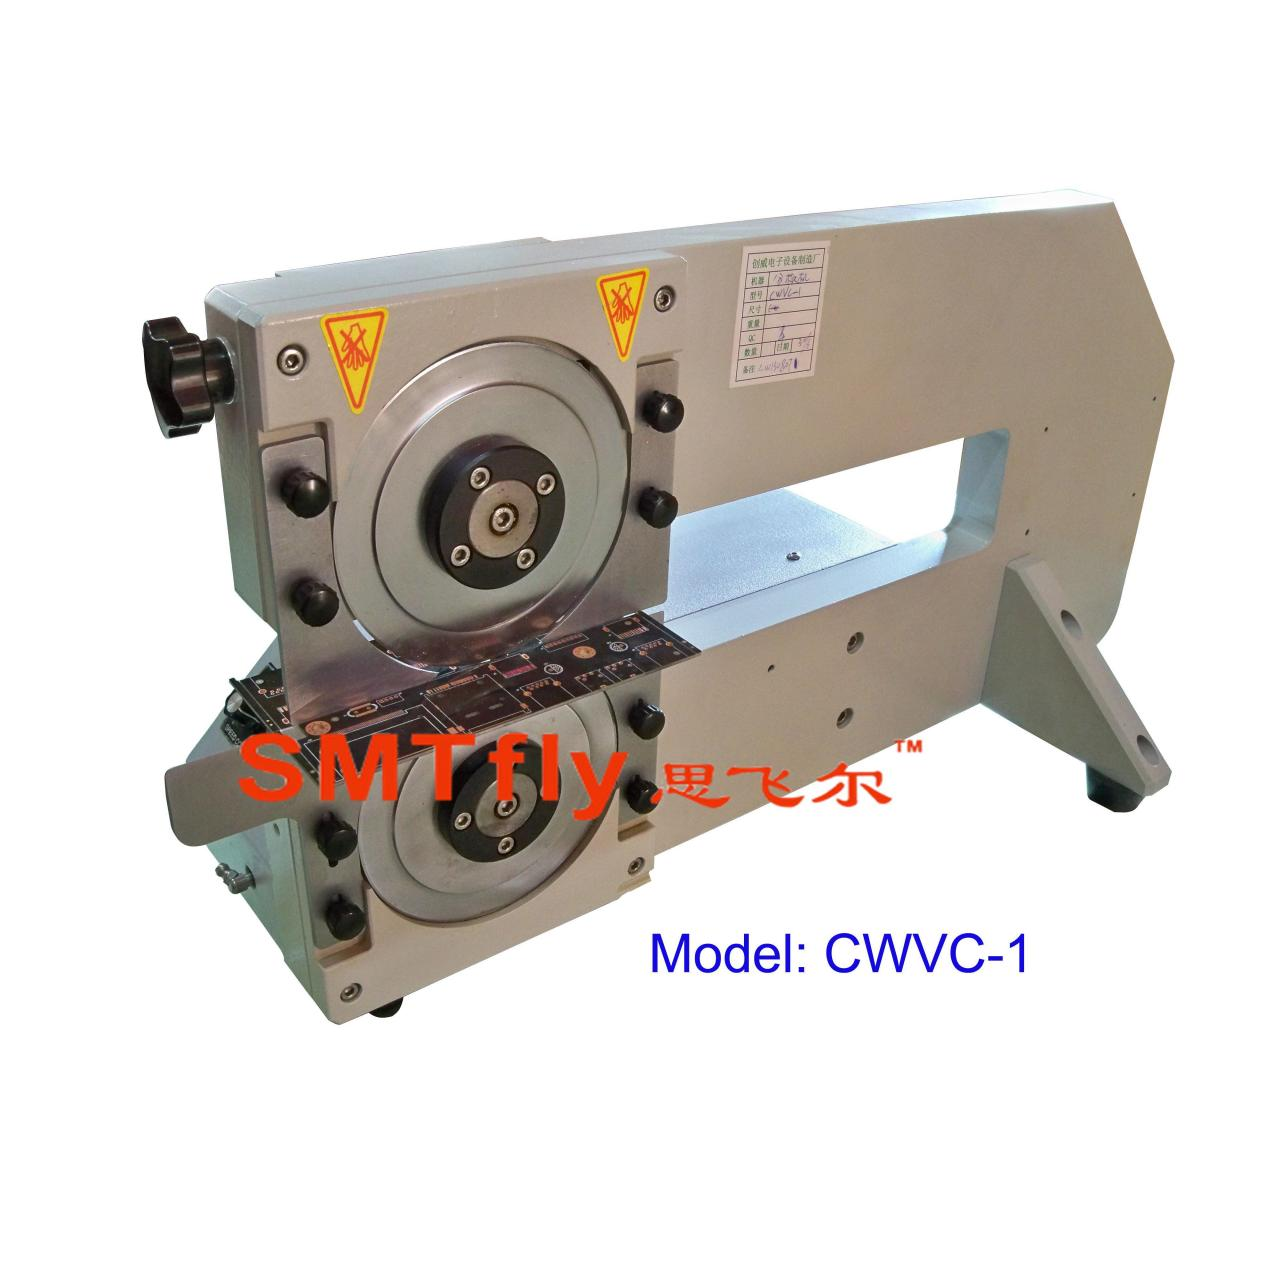 Buy cheap PCB separator cutting machine for pcb,SMTfly-1 from wholesalers